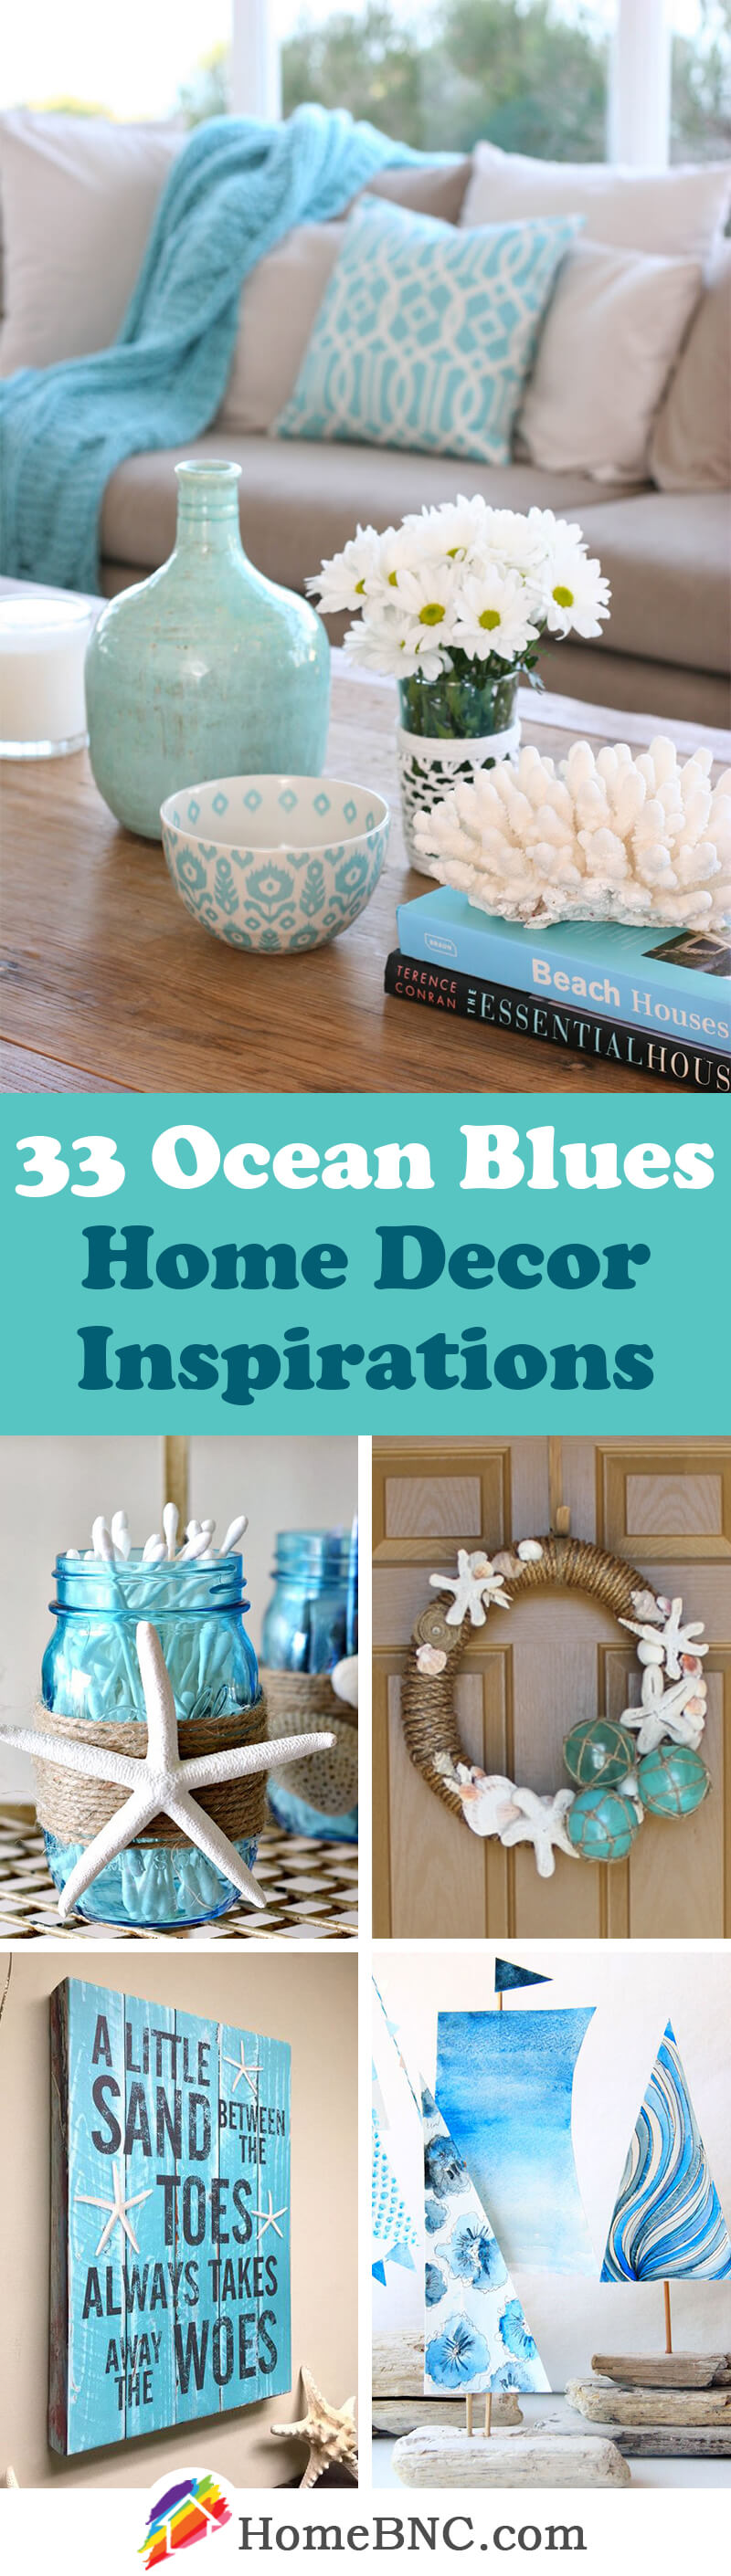 Ocean Home Decor ocean inspired home decor home and wedding registry bridescom bridescom 33 Ocean Blues Home Decor Inspirations To Bring Some Zen To Your Home